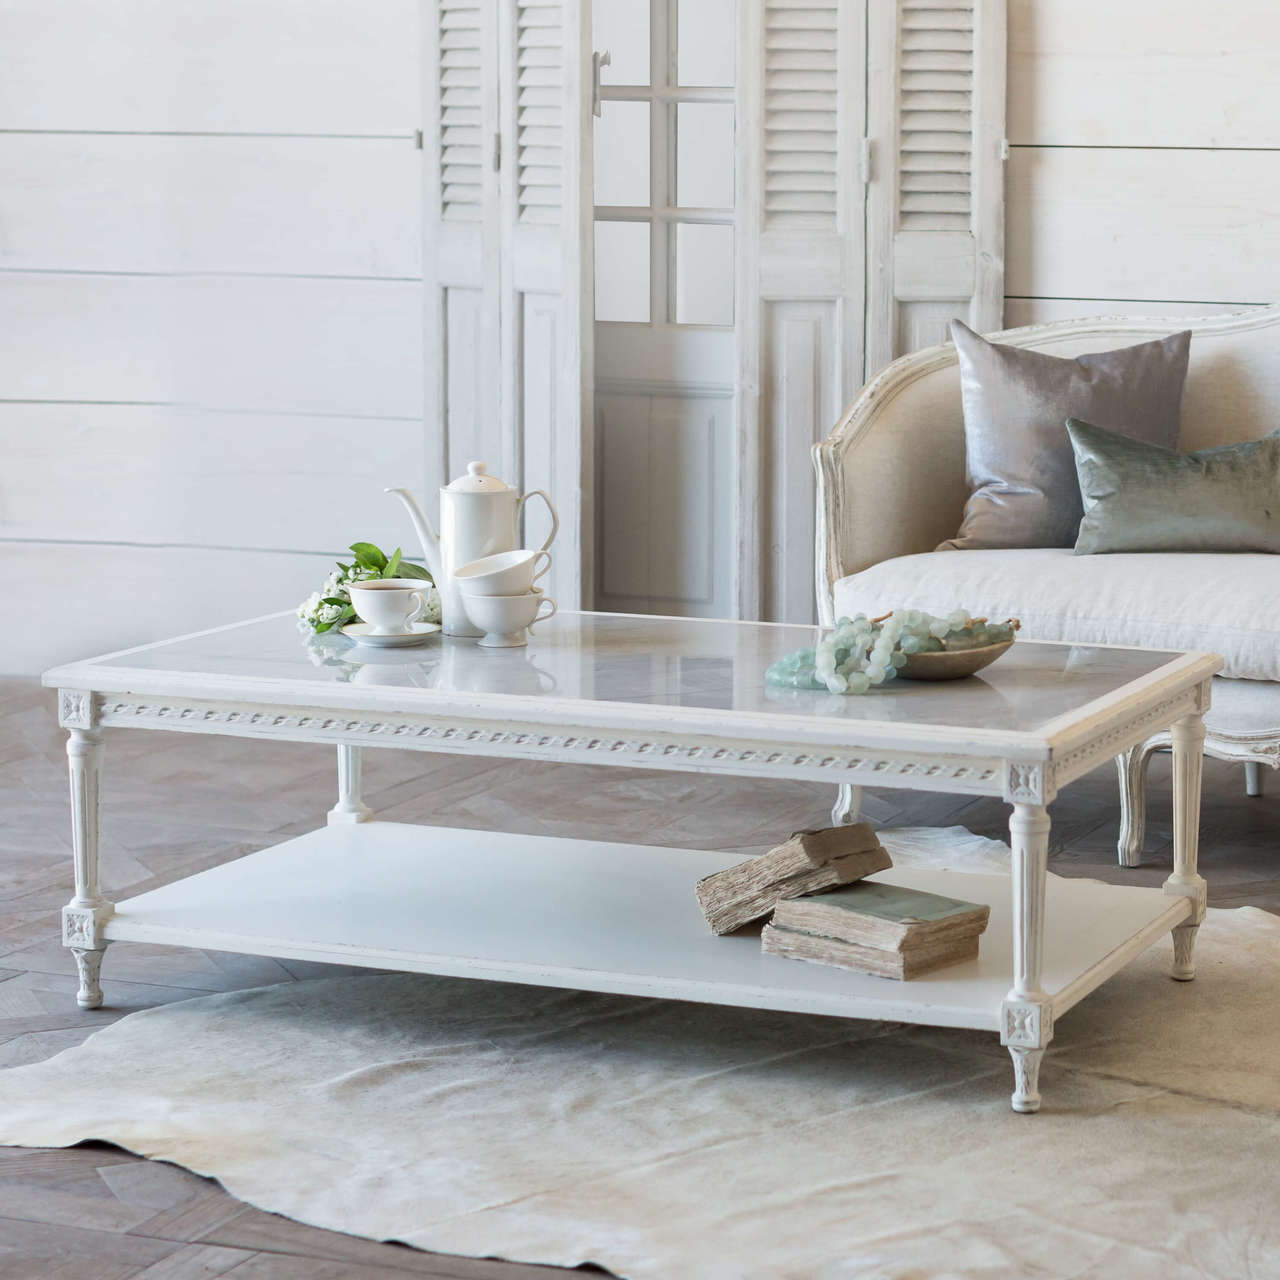 Eloquence® Grande Le Courte Coffee Table in Antique White Finish